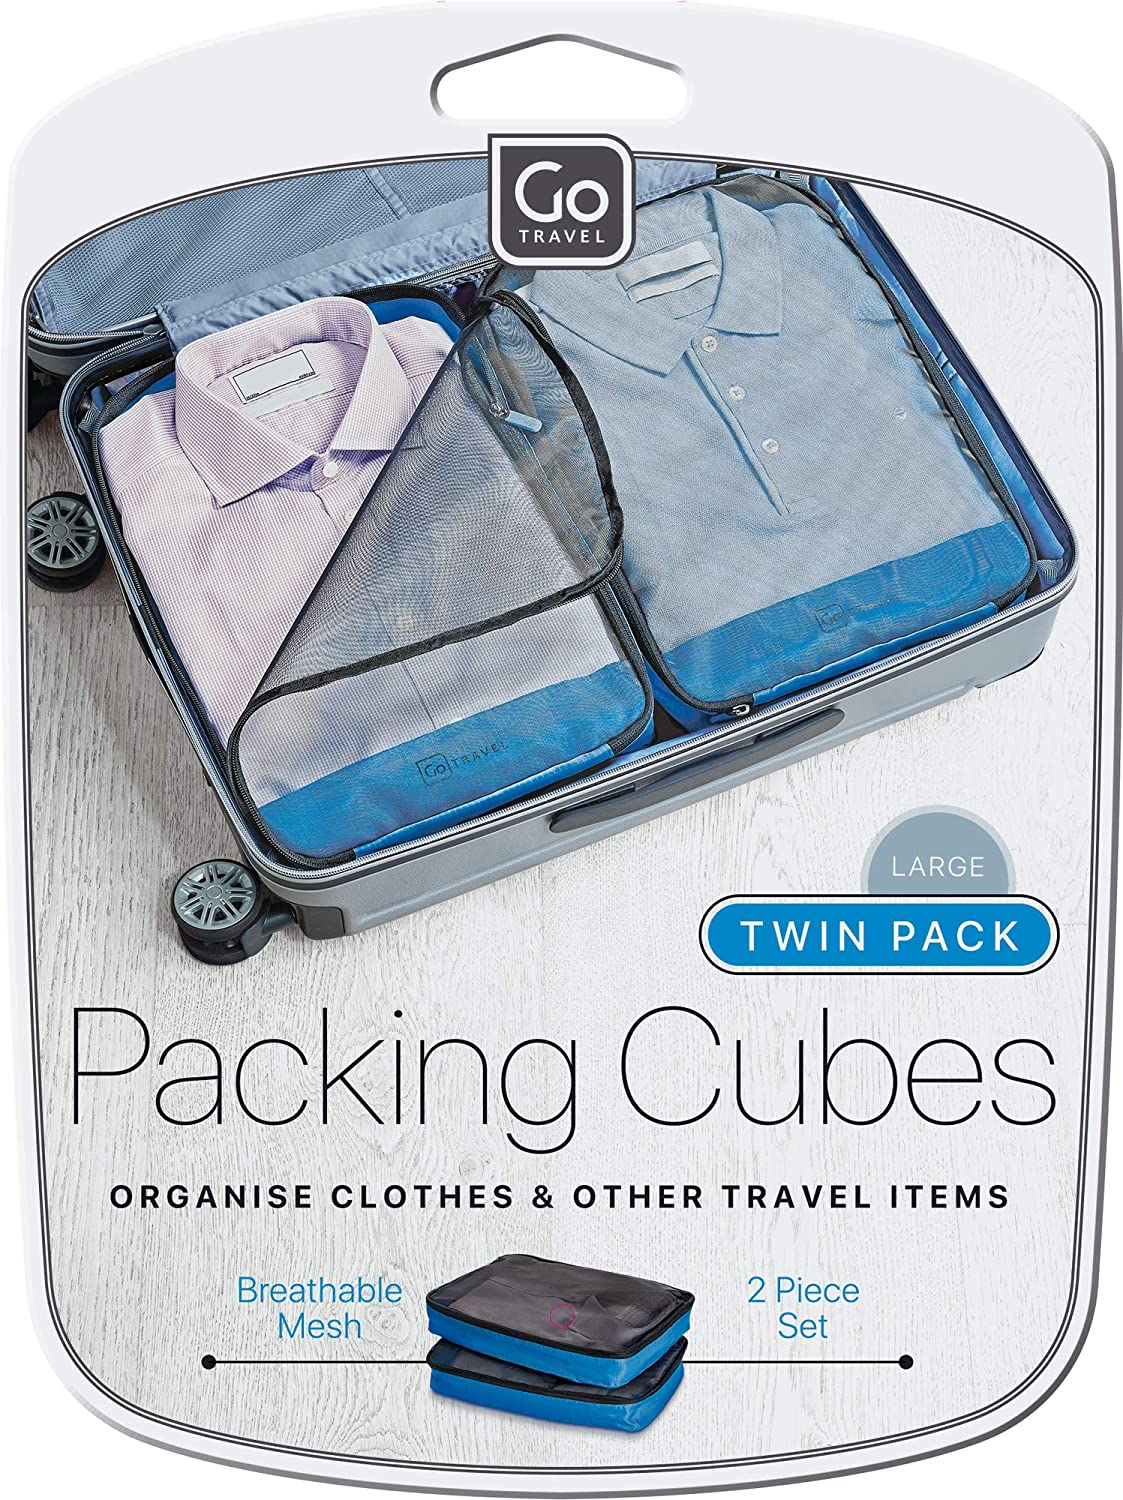 2 Piece Set Lightweight and Breathable Large Capacity Ref 285 Go Travel Clothes//Garment Suitcase Packing Cubes